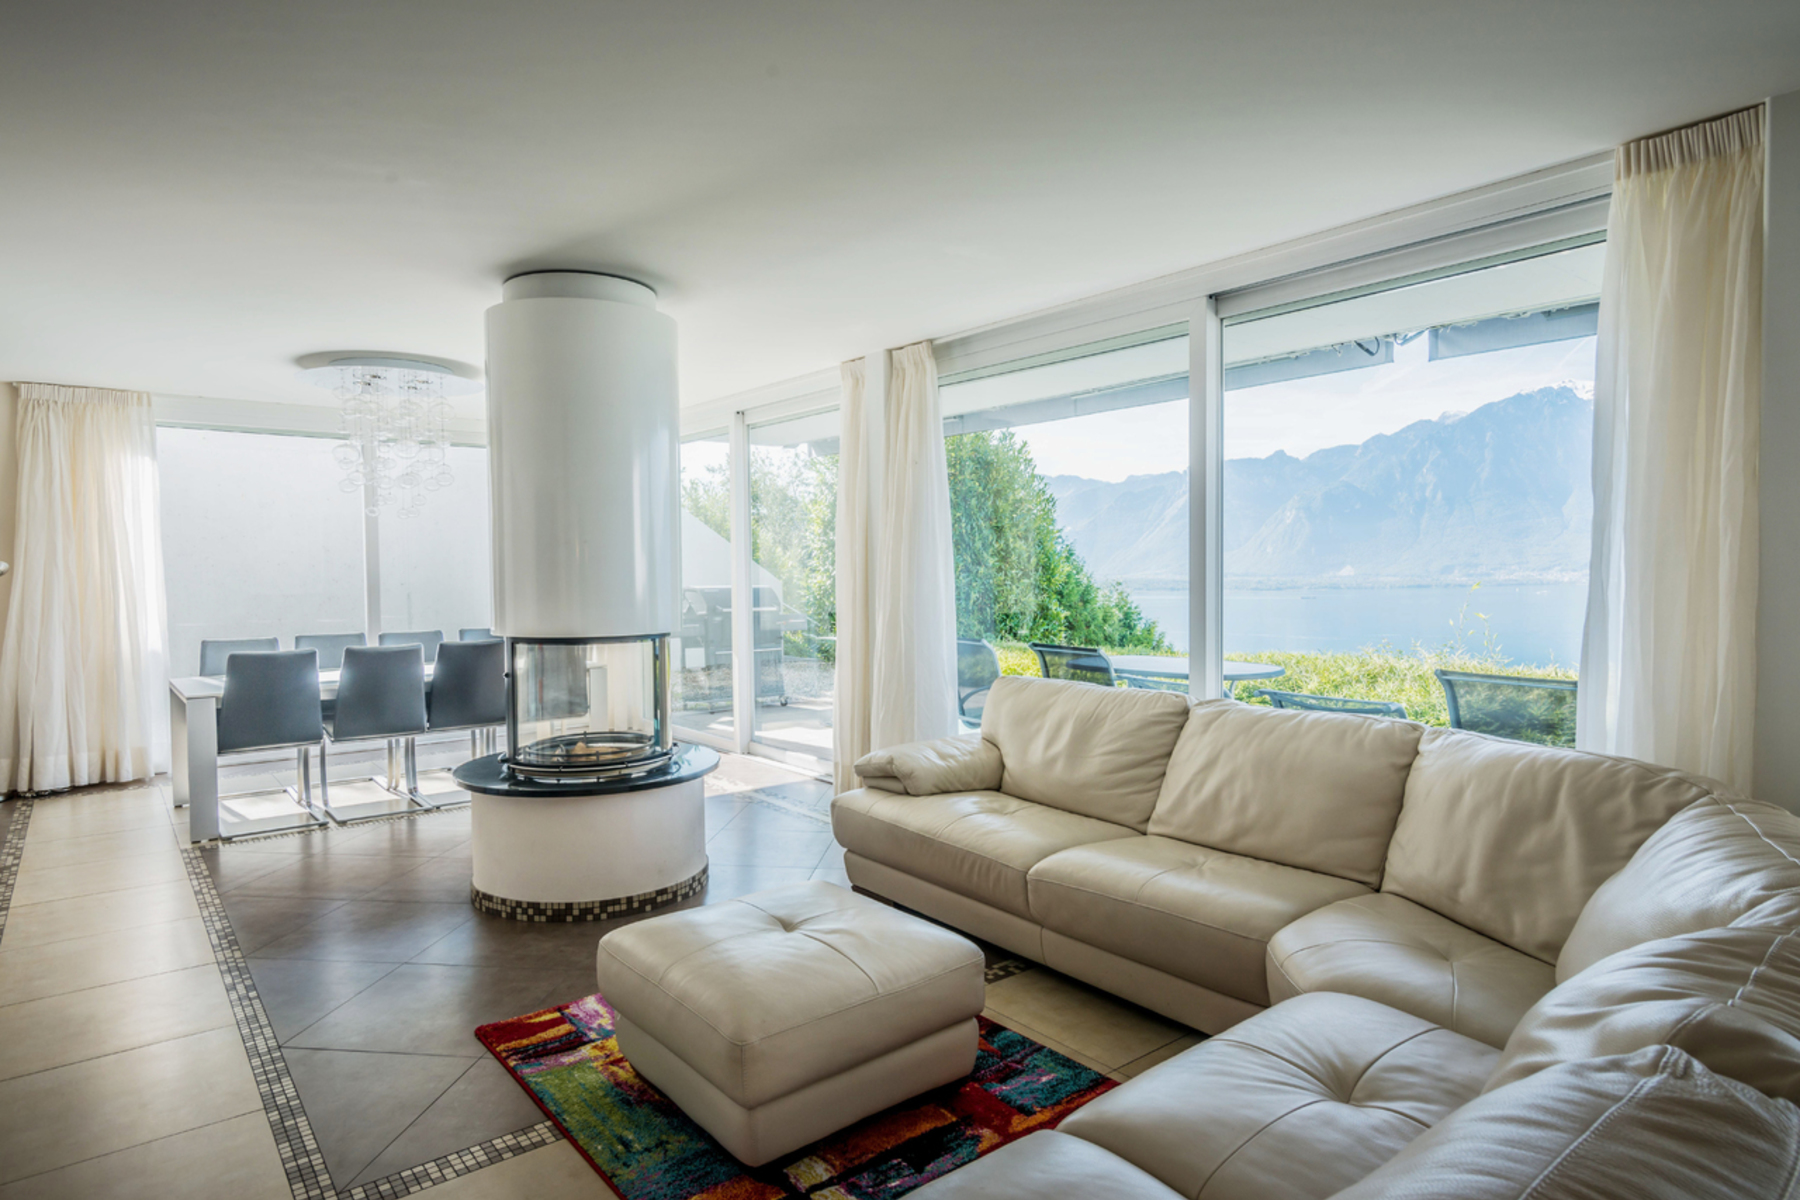 Duplex for Sale at Magnificent 5.5 room apartment with panoramic views over the lake Montreux Montreux, Vaud 1820 Switzerland